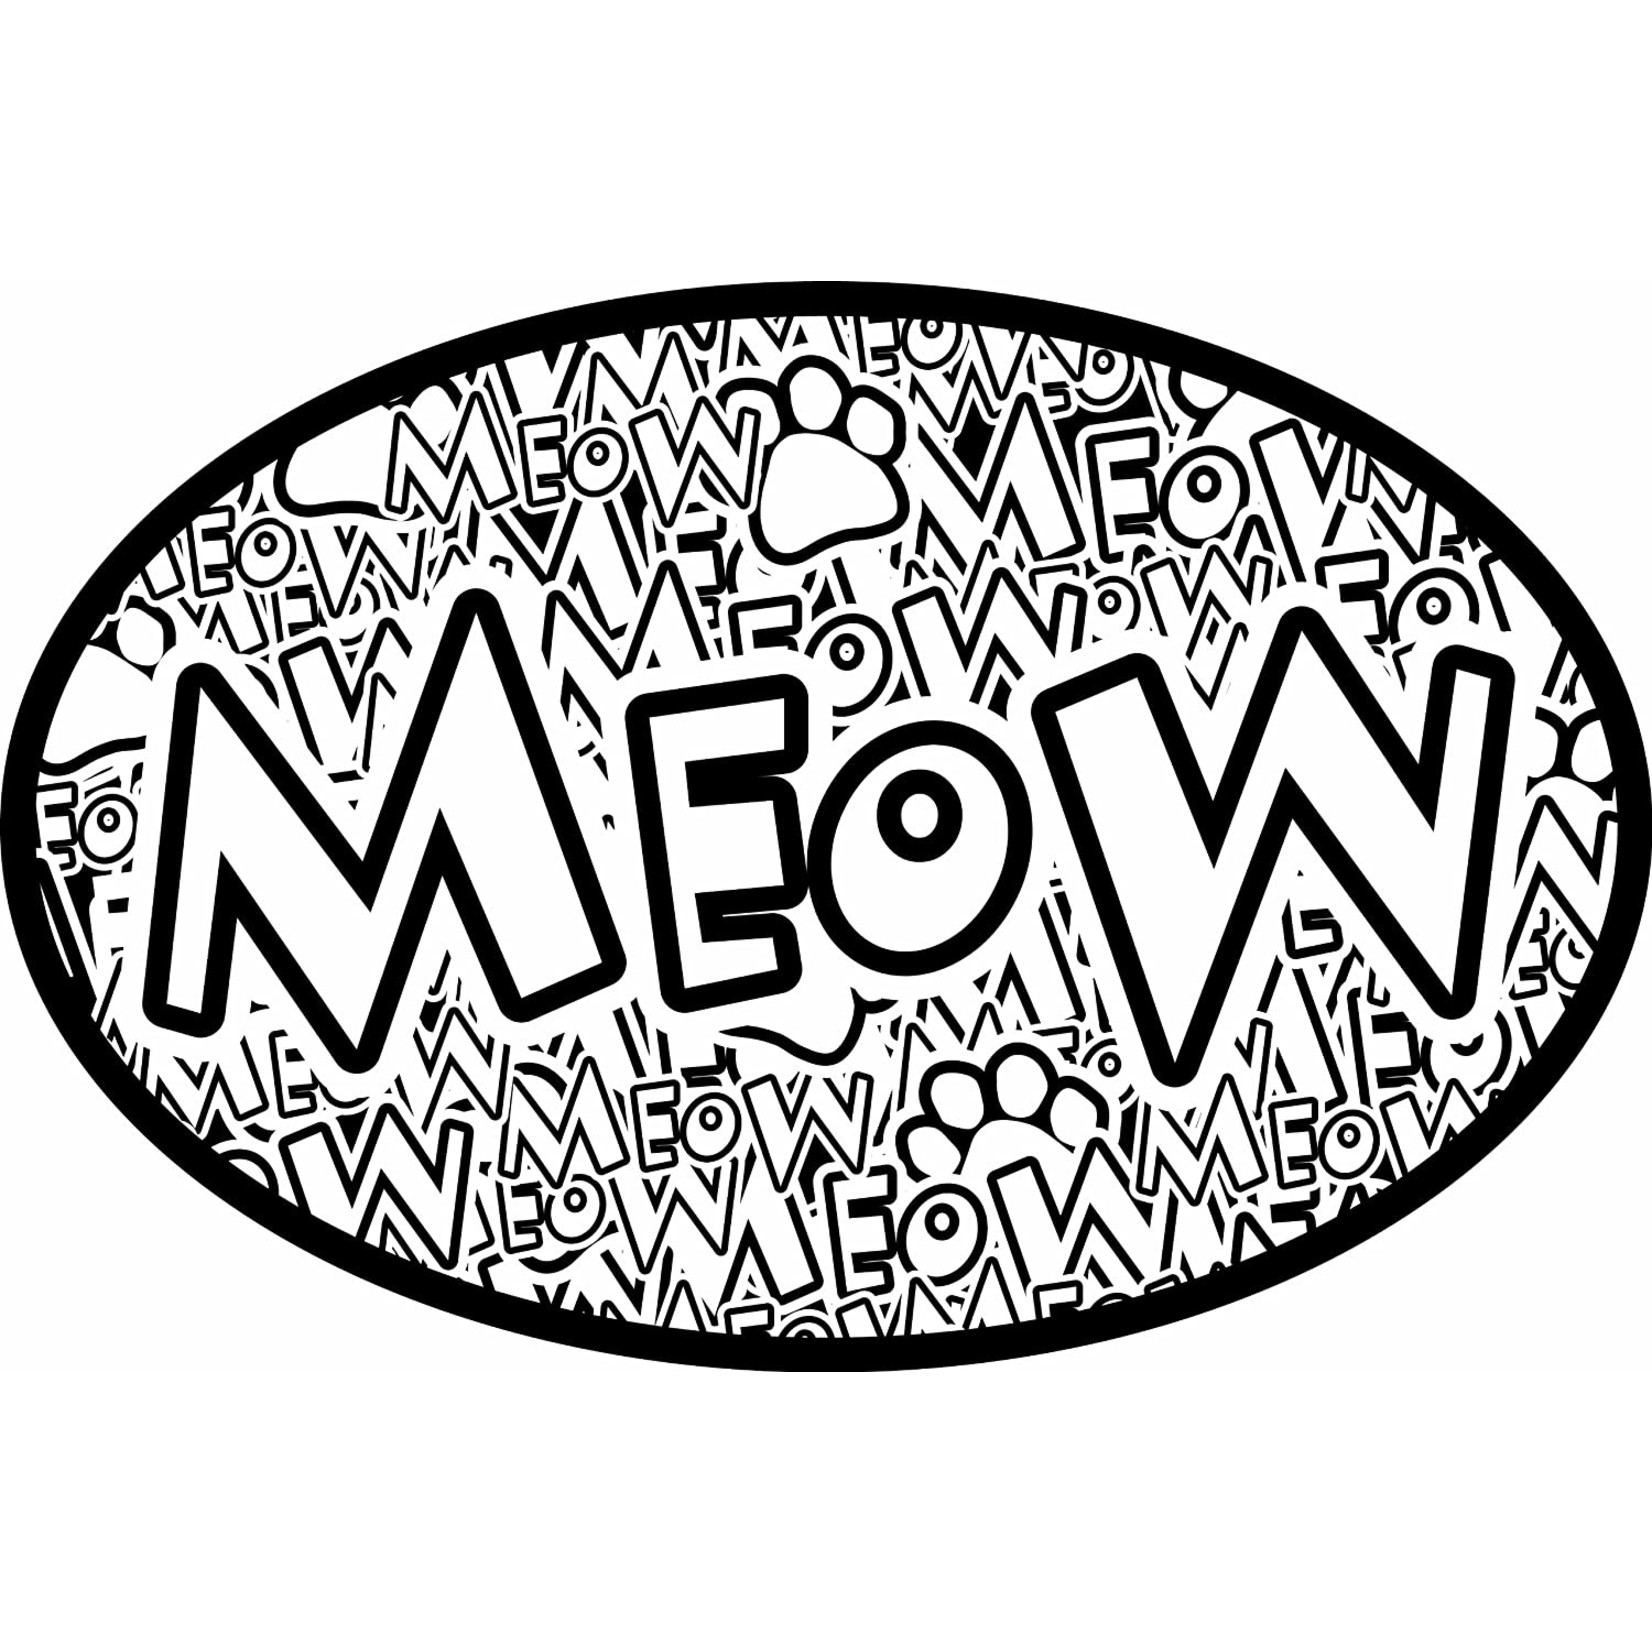 IMAGINETHIS Oval Pet Magnet Meow Crazy